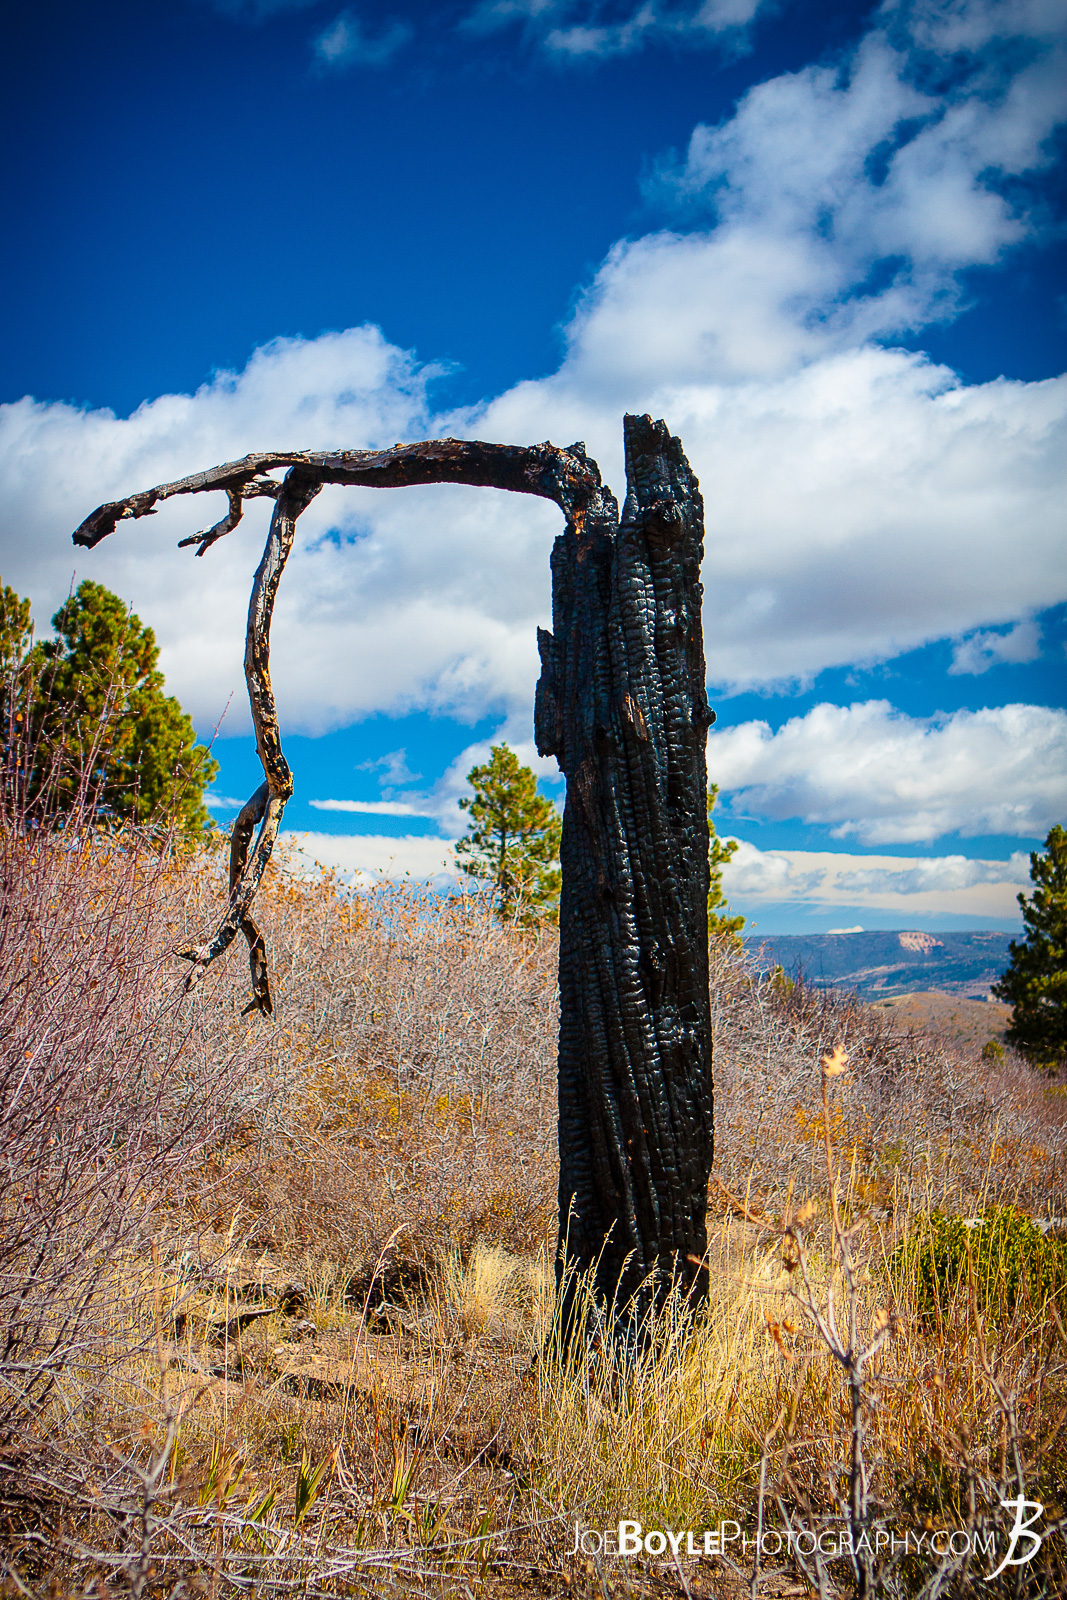 This is a photo of a burnt tree trunk that I saw while hiking the West Rim Trail in Zion National Park.  Here are some links to more articles and hiking info about the West Rim Trail and hiking trails in Zion National Park and a Map of Zion National Park.